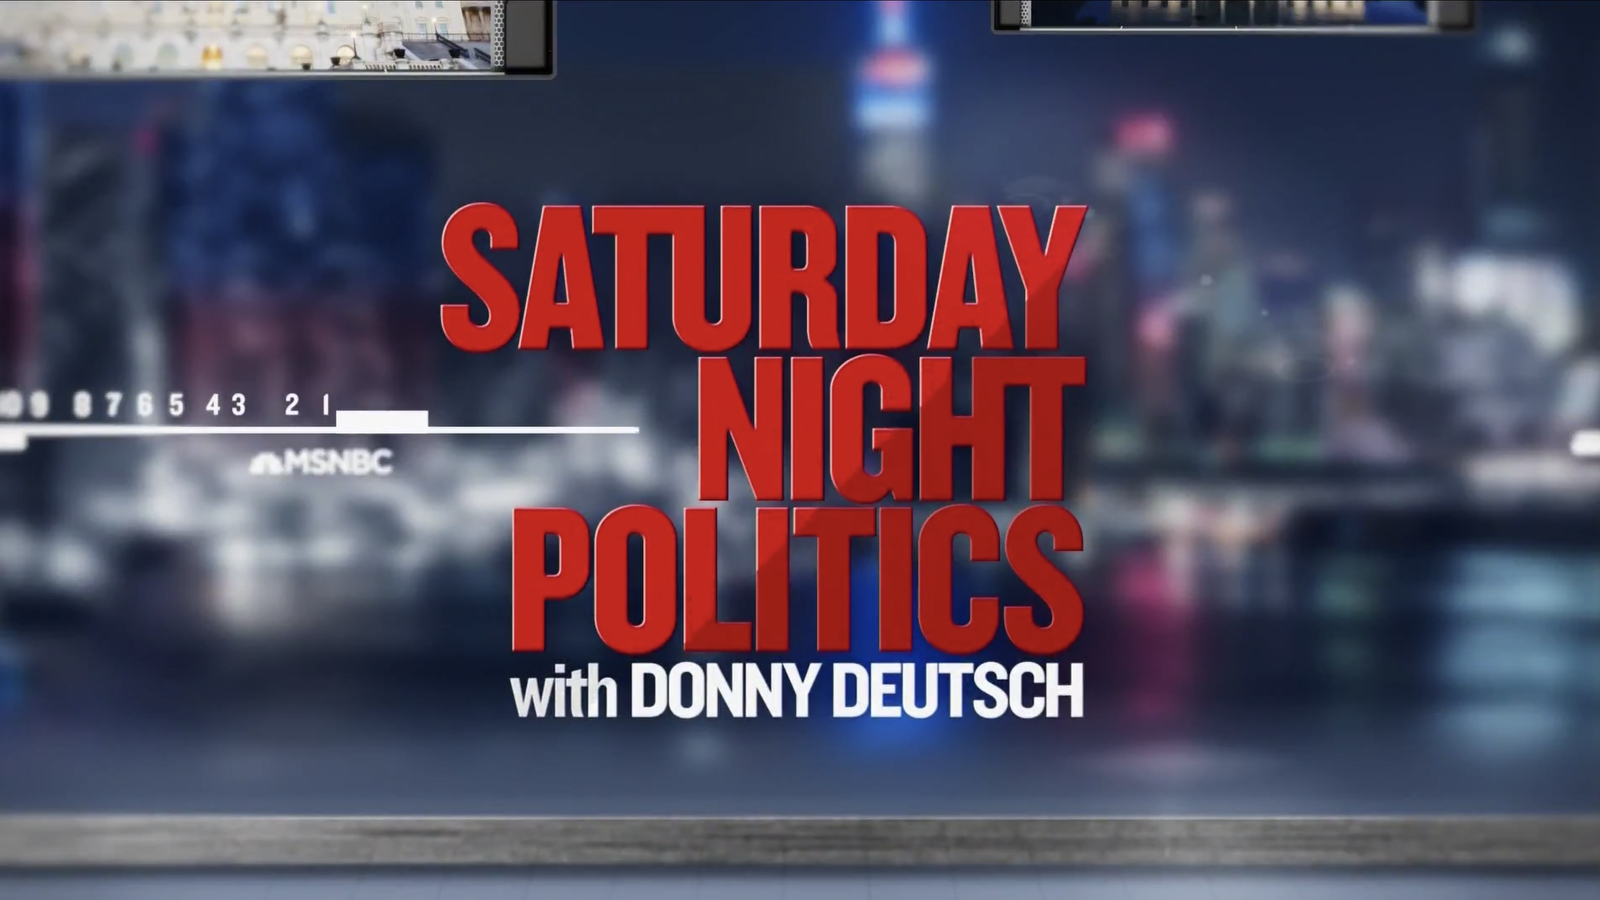 NCS_MSNBC-Saturday-Night-Politics_0045